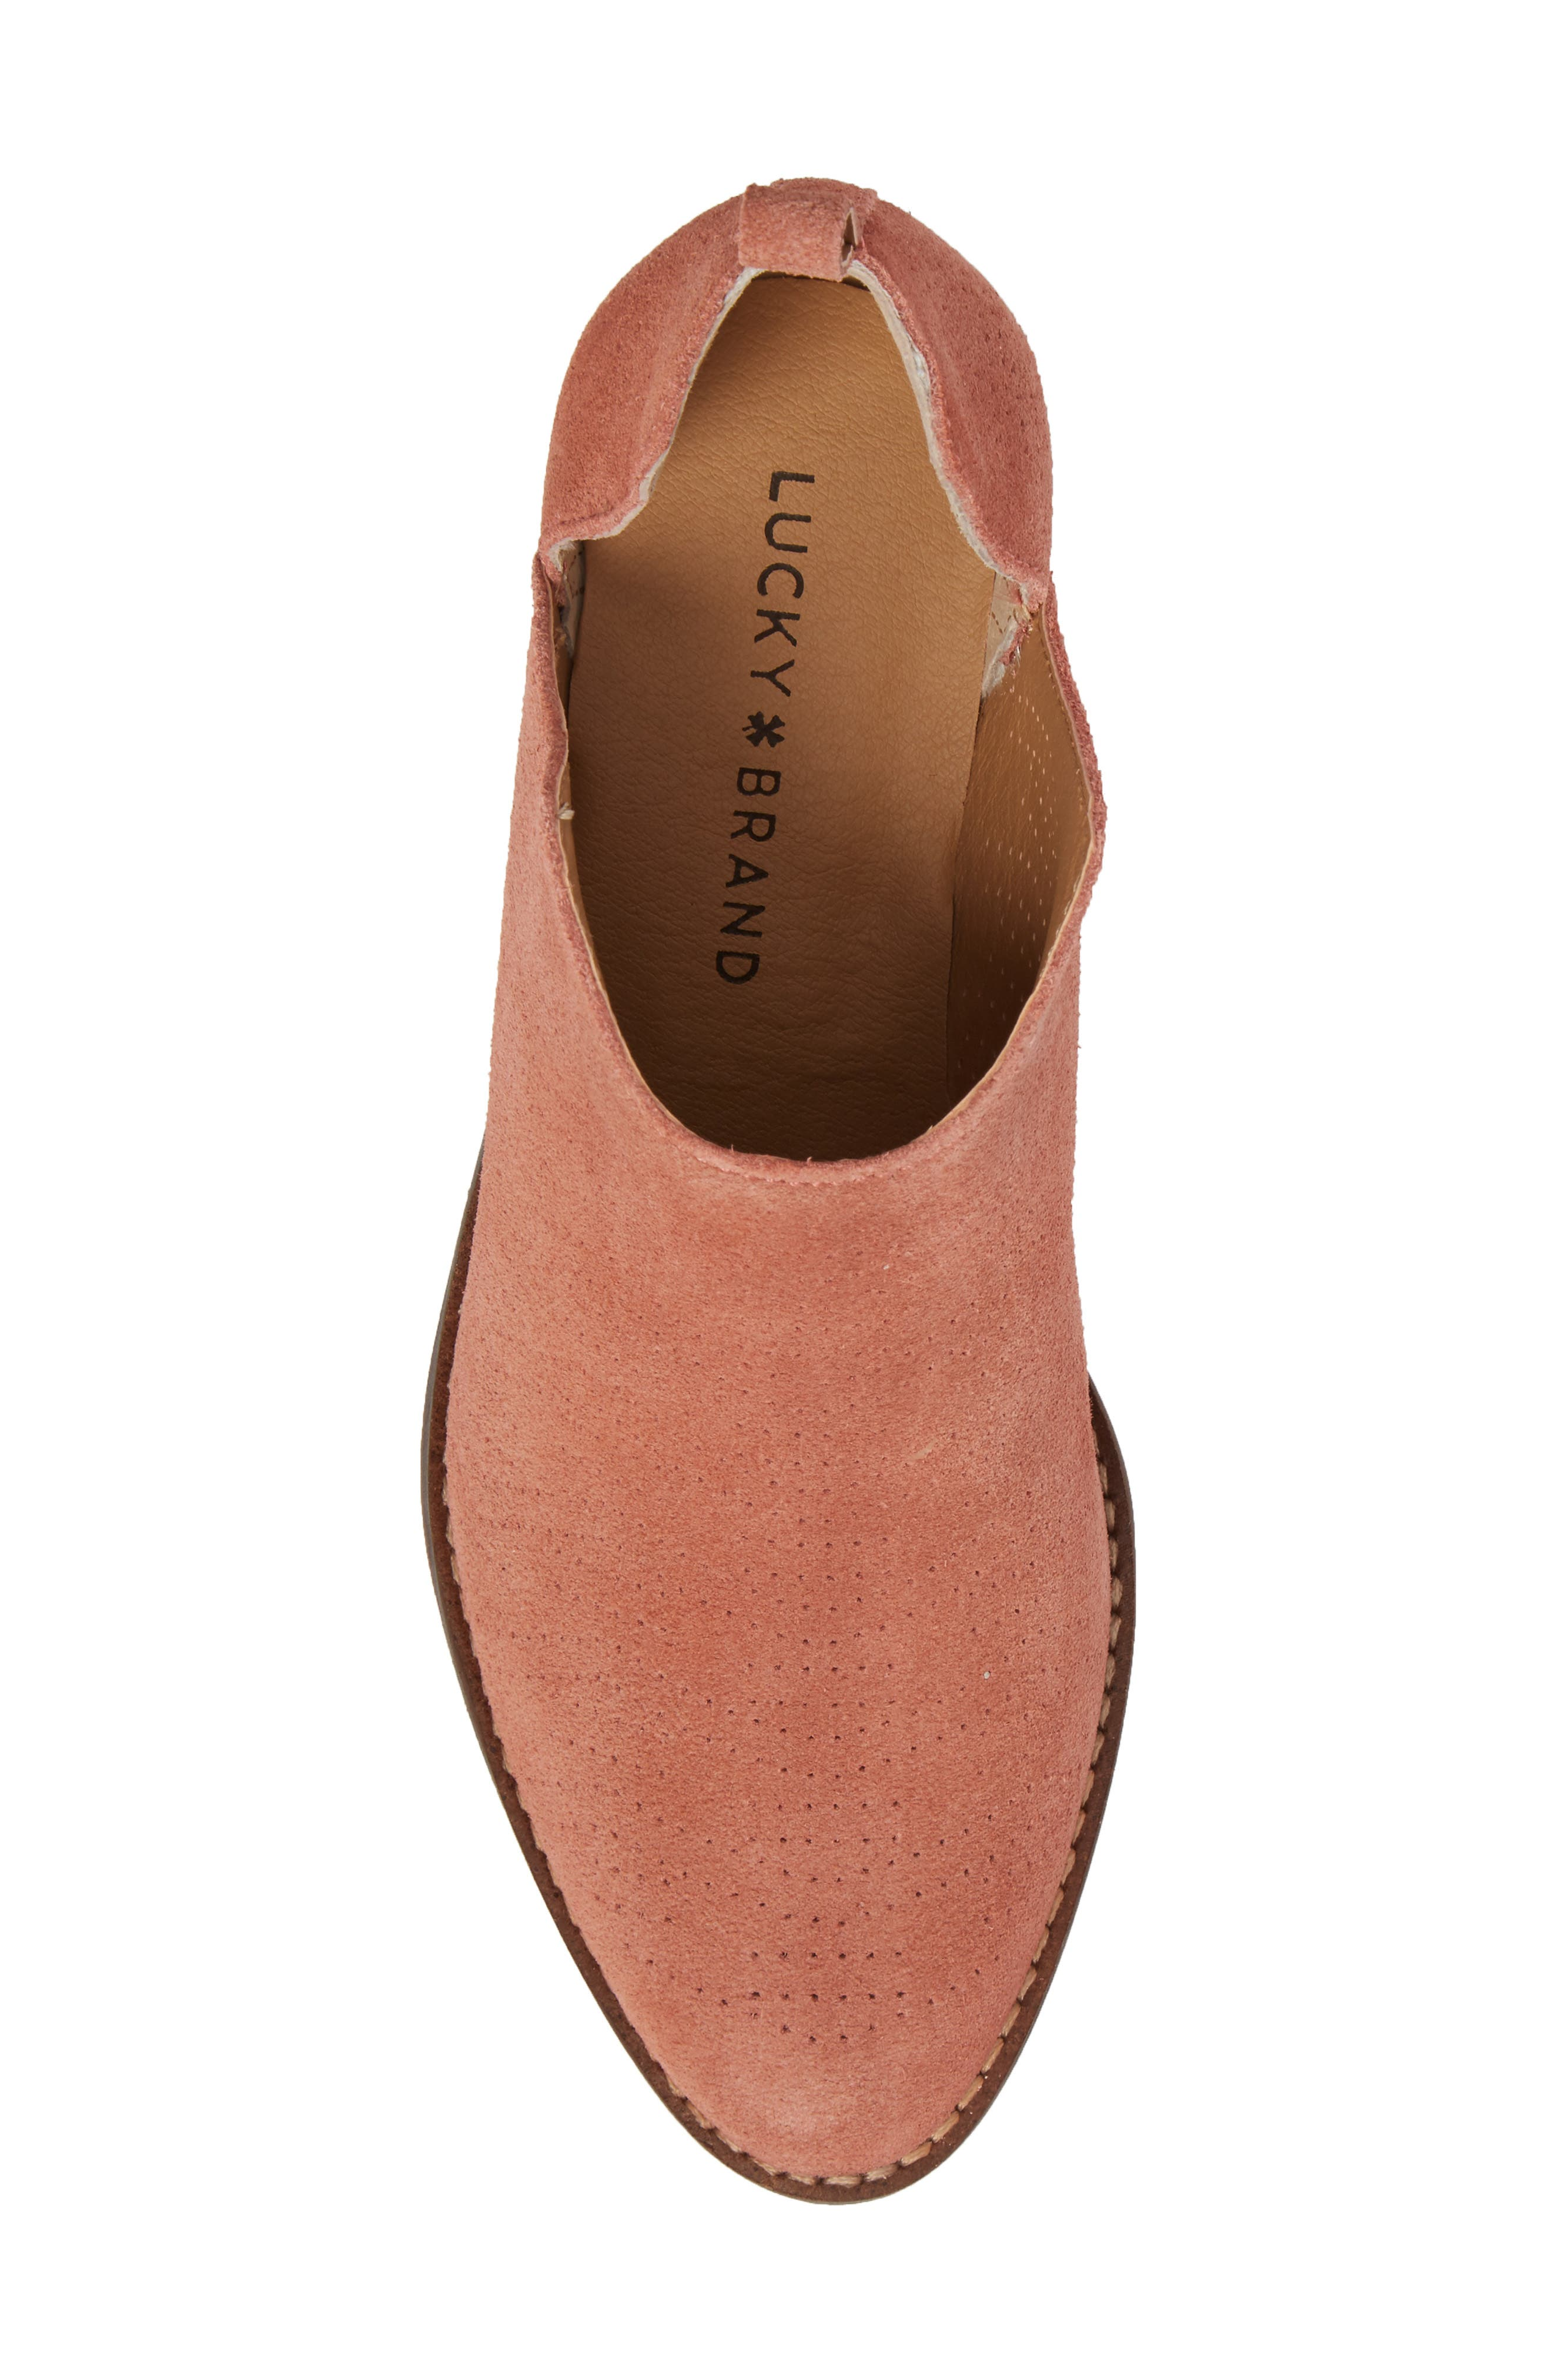 Fayth Bootie,                             Alternate thumbnail 5, color,                             Canyon Rose Suede